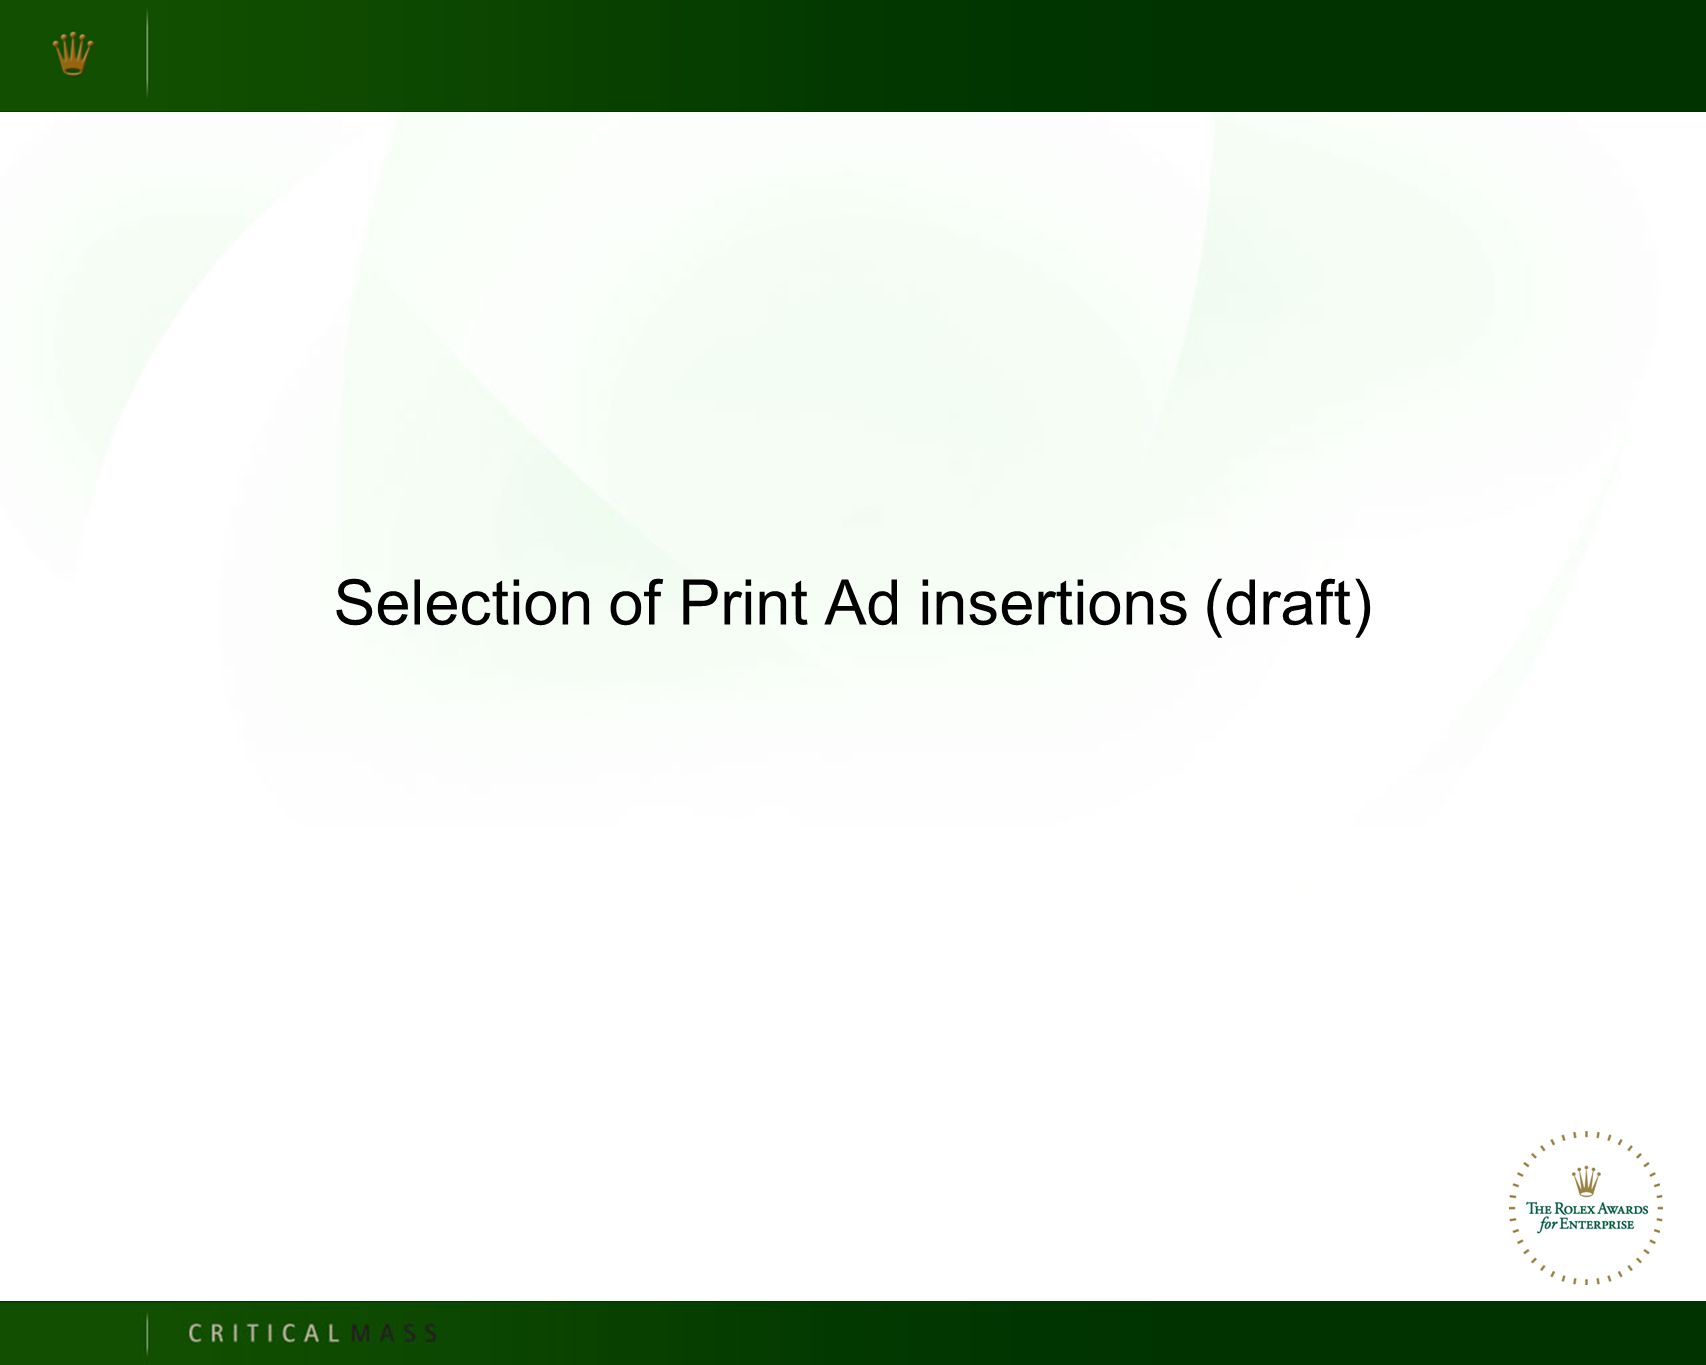 Selection of Print Ad insertions (draft)